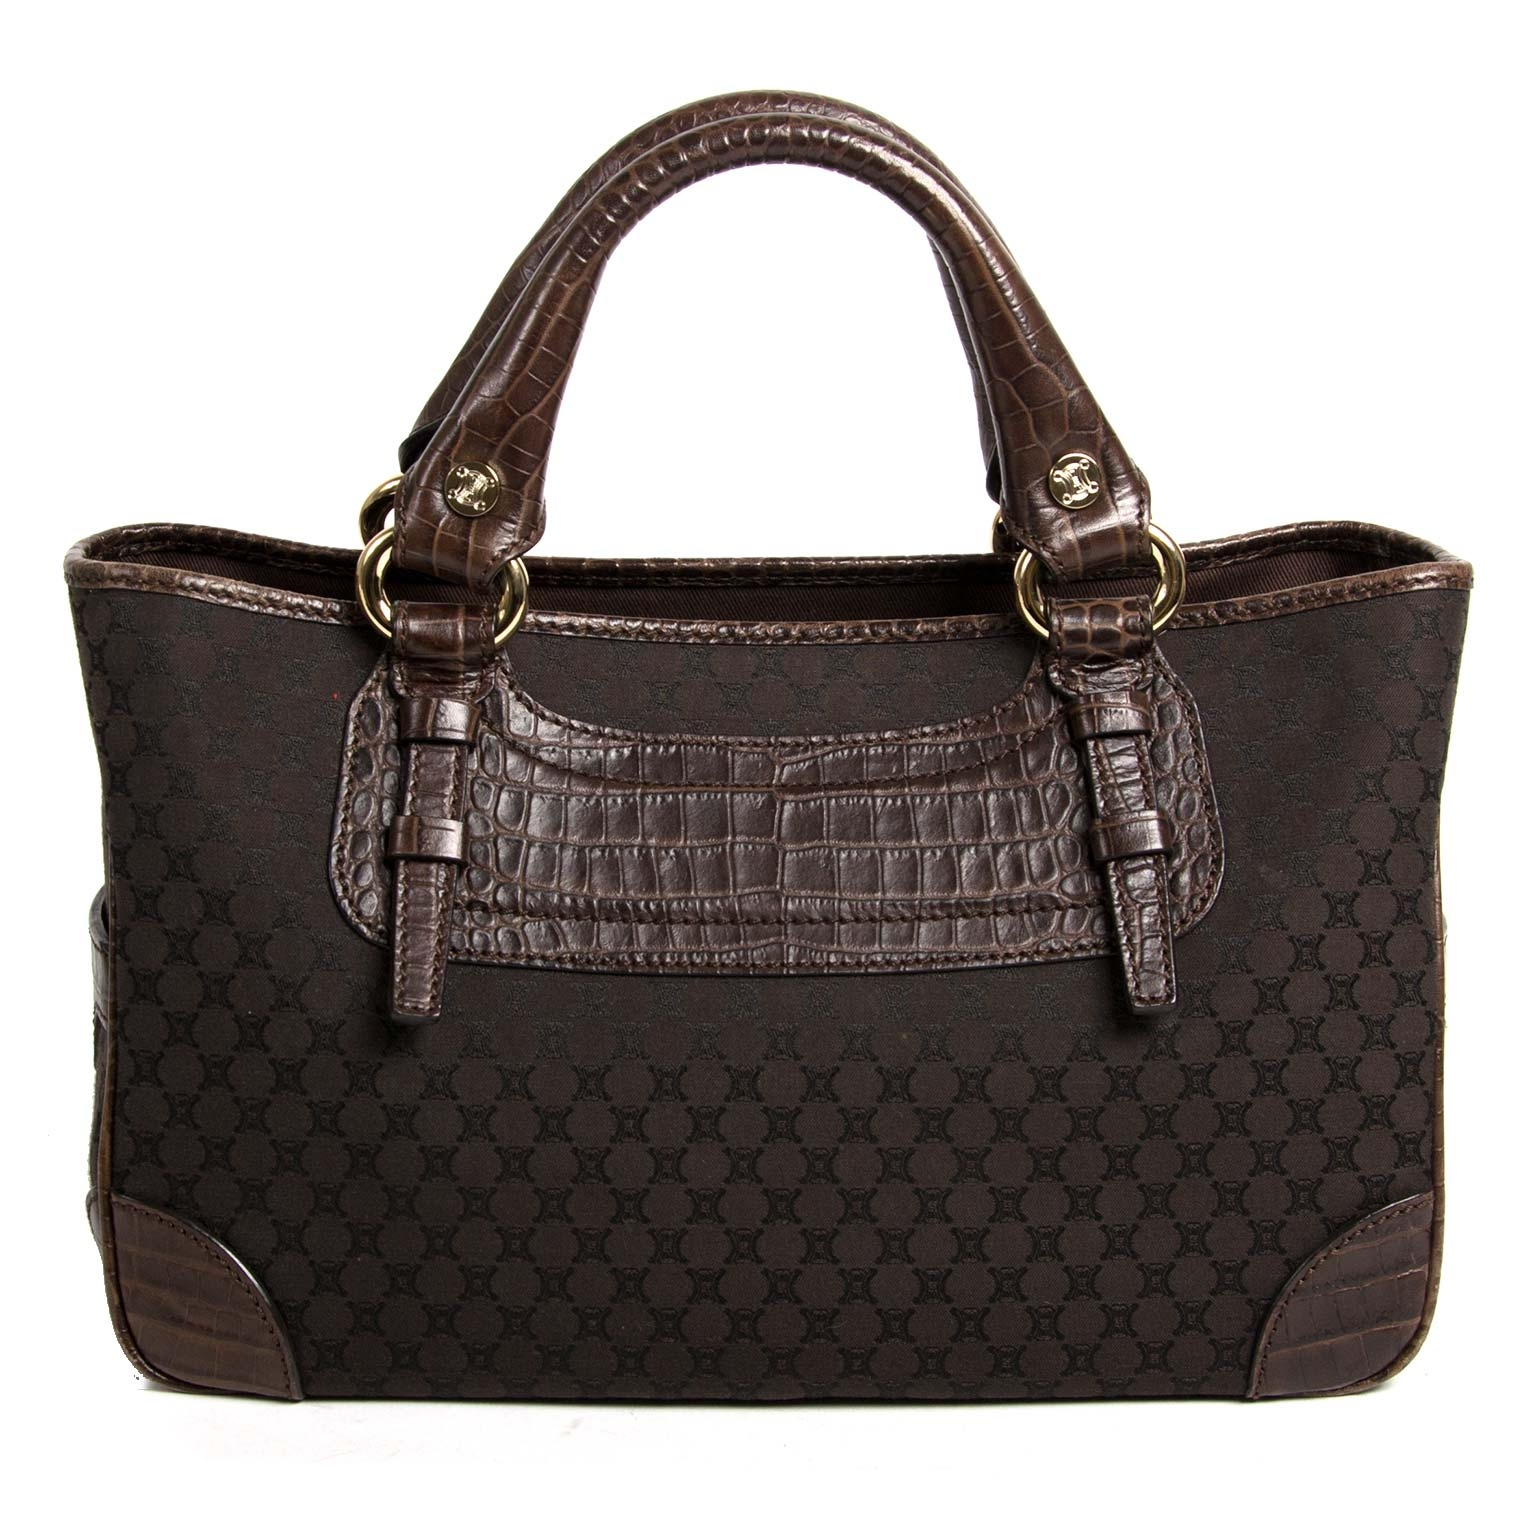 céline brown monogram boogie bag now for sale at labellov vintage fashion webshop belgium